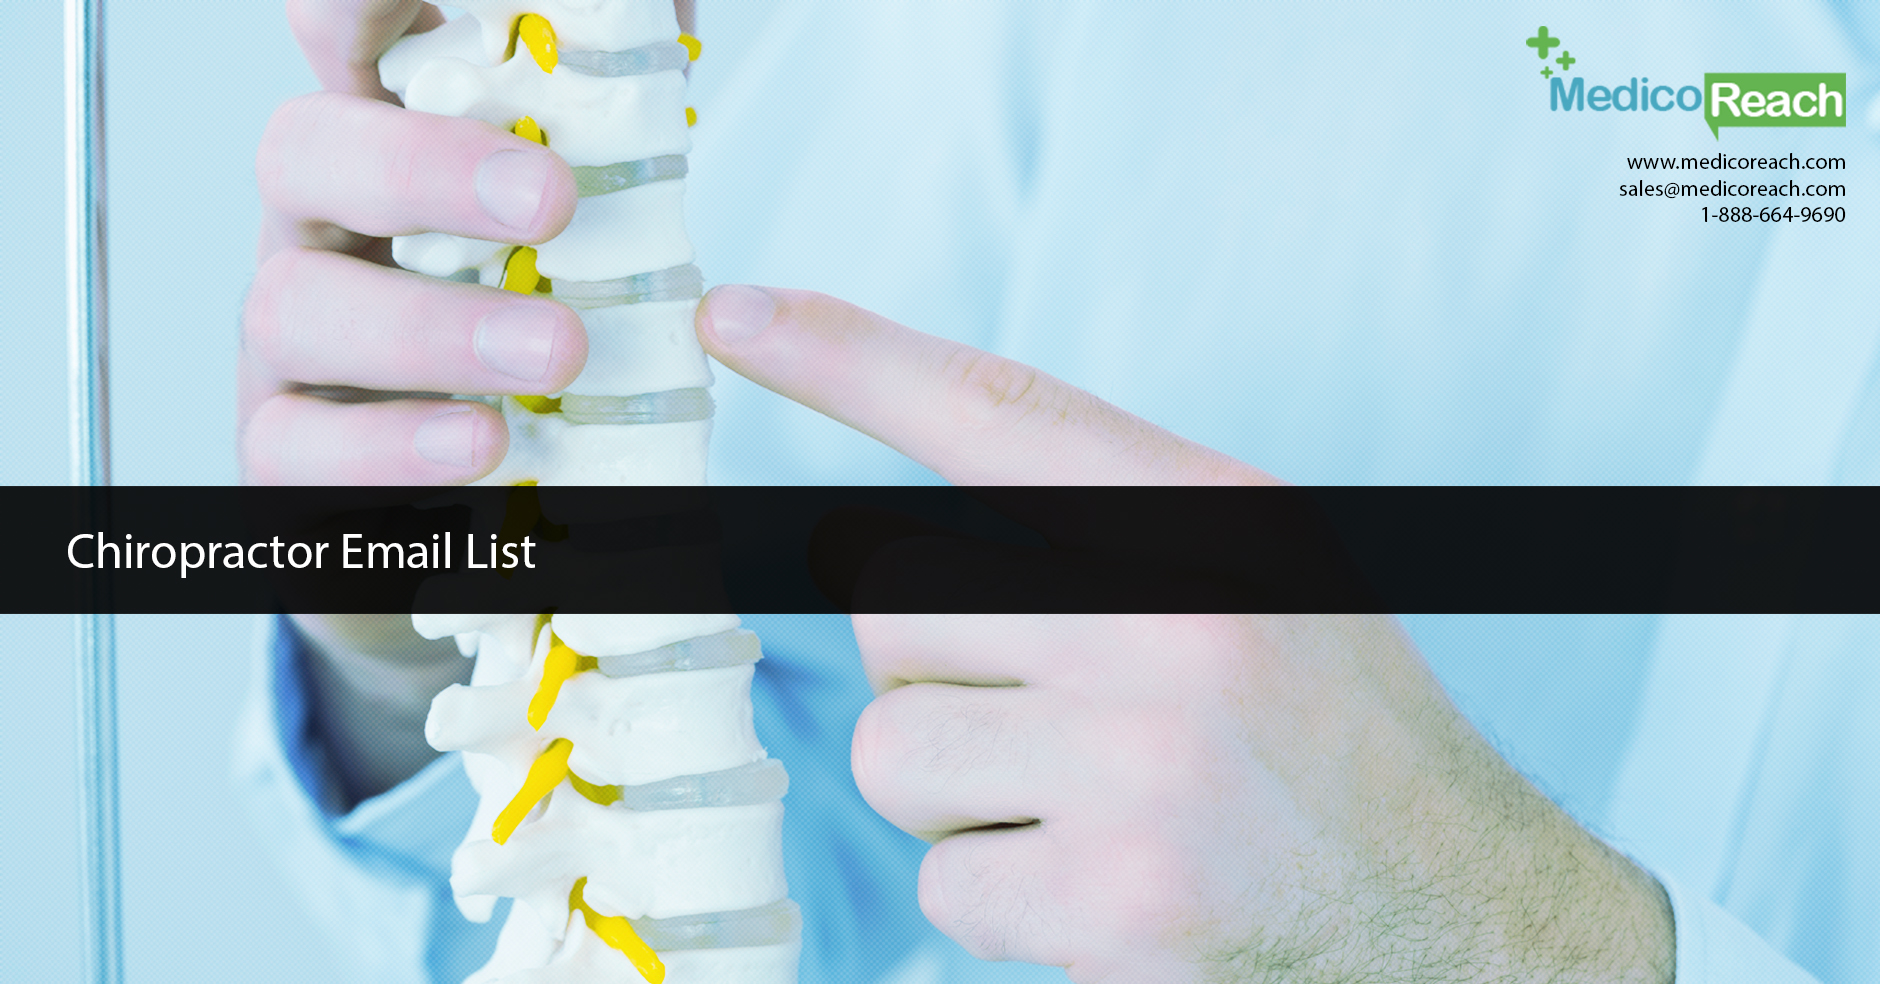 Get Chiropractor Database and Email List of Chiropractic